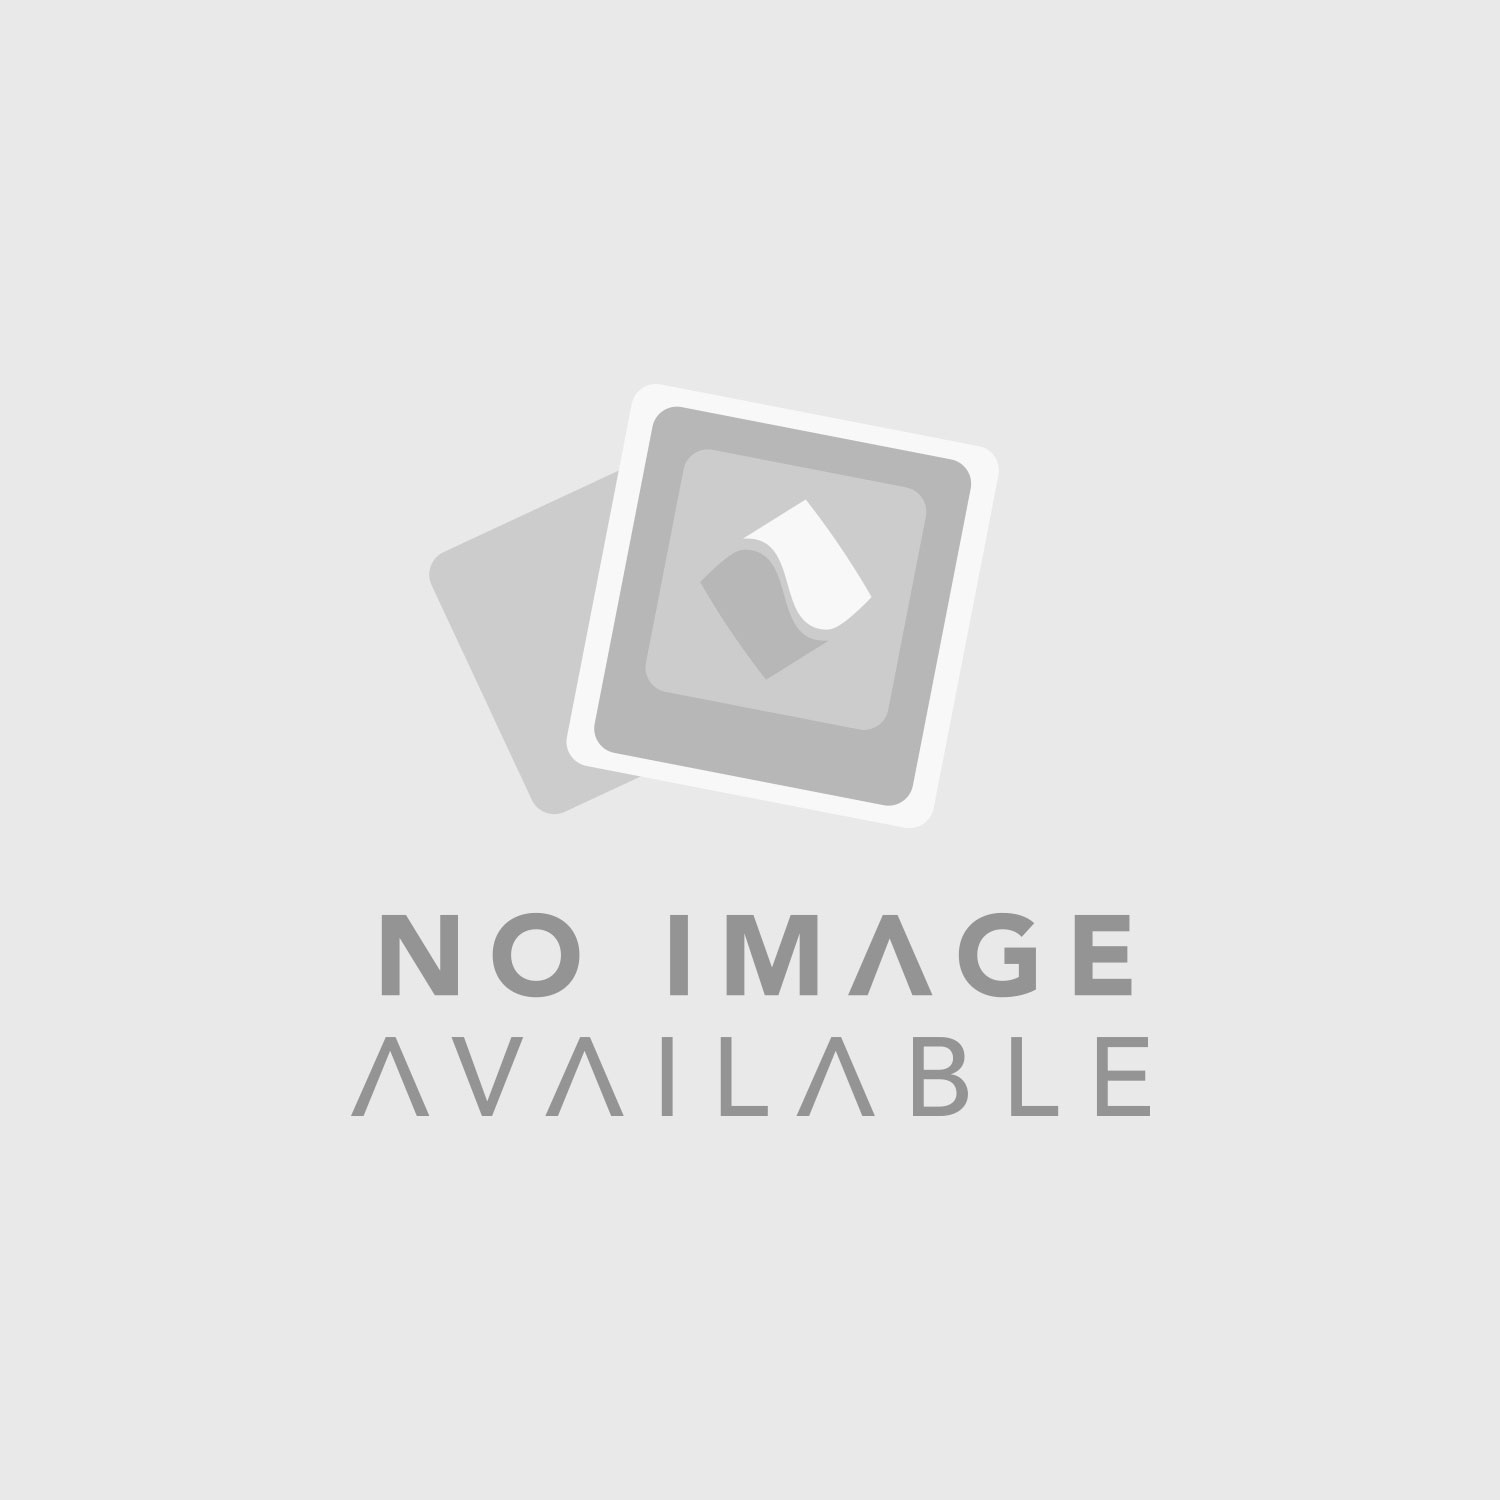 Yamaha HS5 Powered Studio Monitors and HS8S Subwoofer with Isolation Pads and Cables Kit (Black)